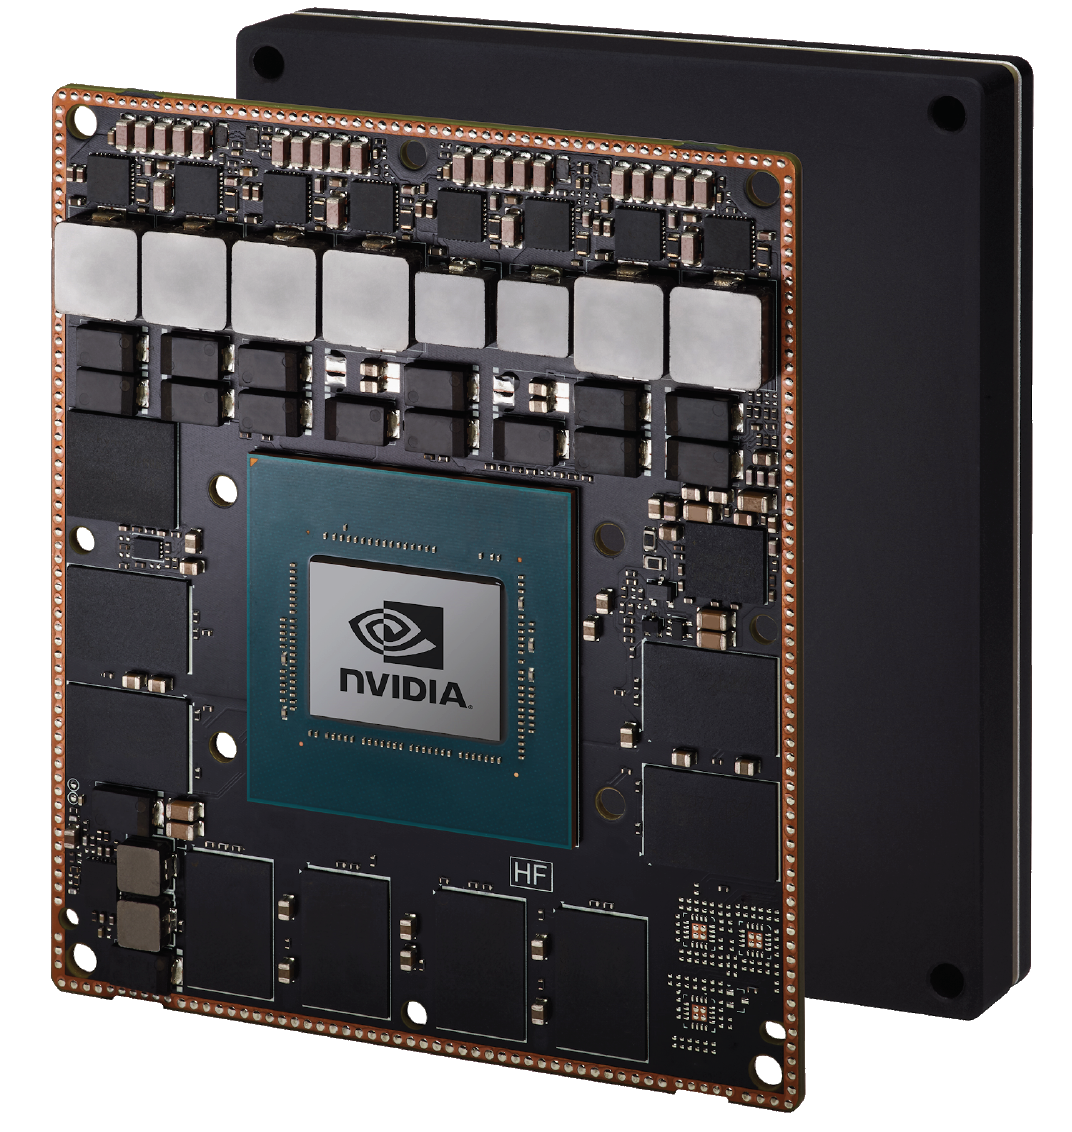 Investigating NVIDIA's Jetson AGX: A Look at Xavier and Its Carmel Cores